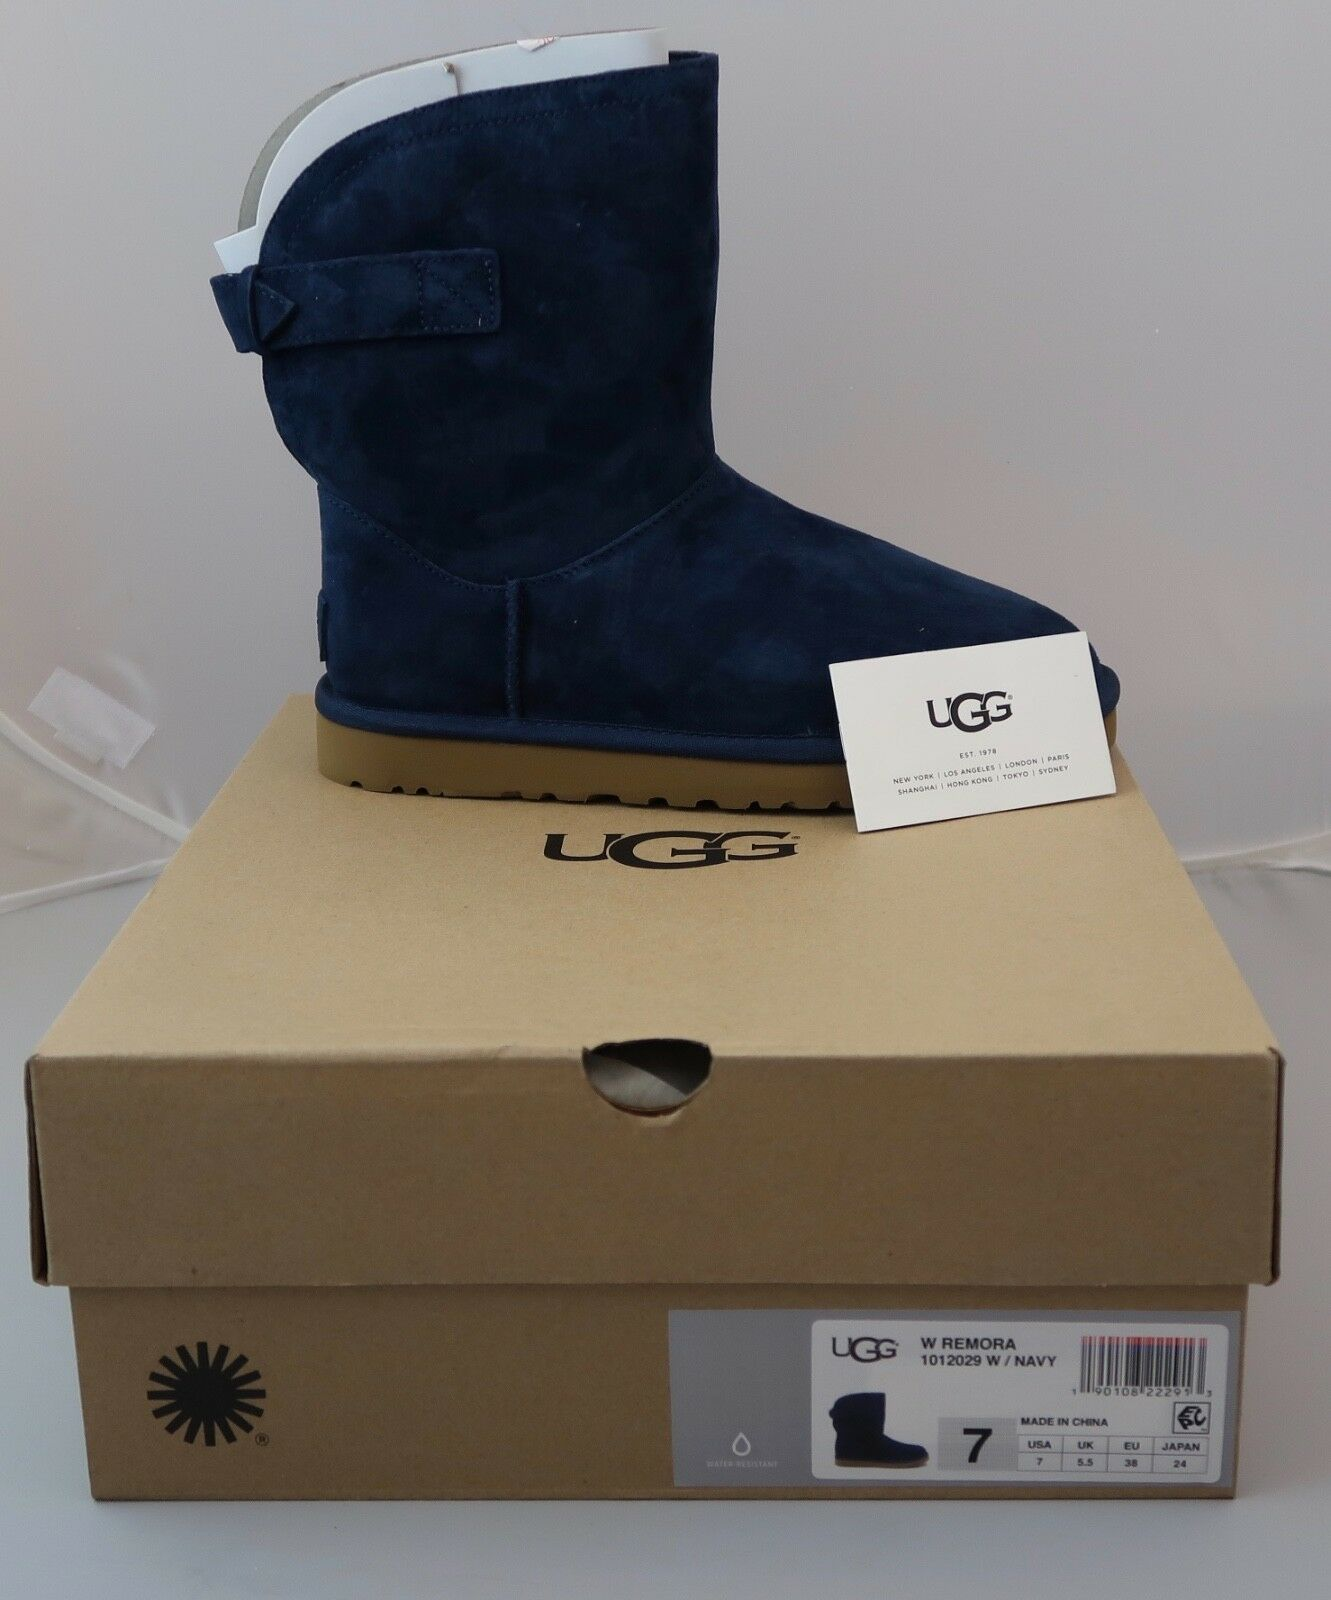 d54c556889e UGG Remora Buckle Short Suede Navy Water Resistant Boot 1012029 Brand New  in Box